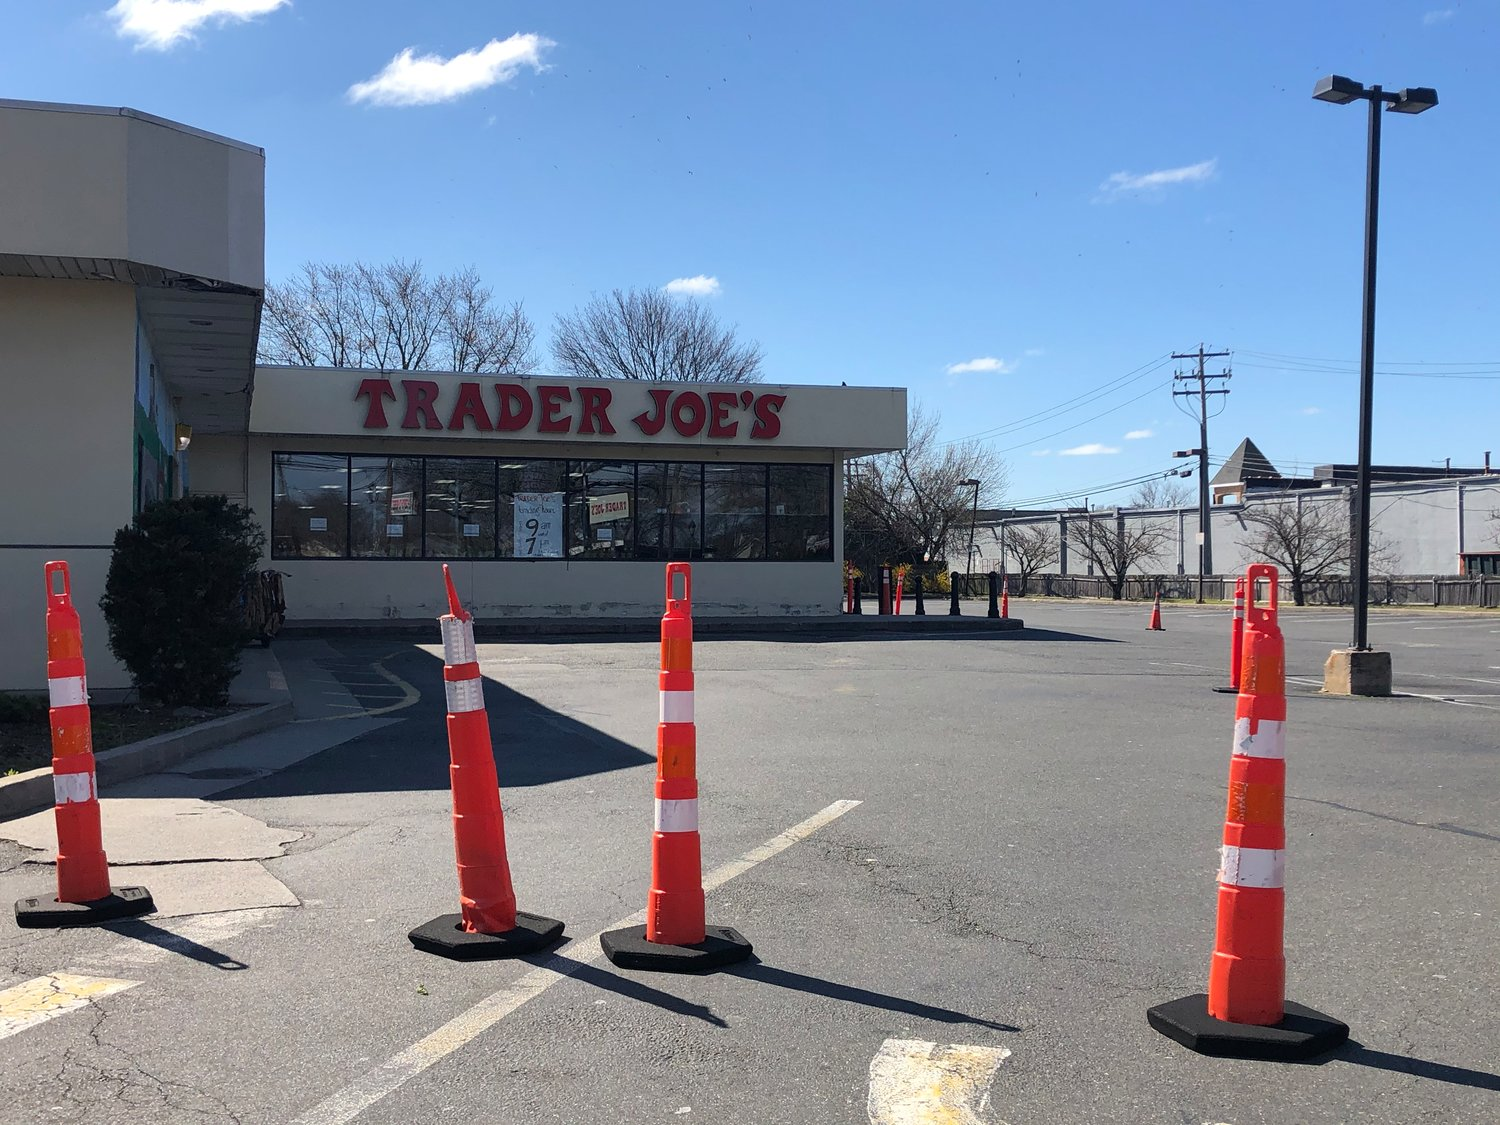 The Trader Joe's store in Merrick reopened to customers on April 4 after being temporarily closed for Covid-19-related cleaning.